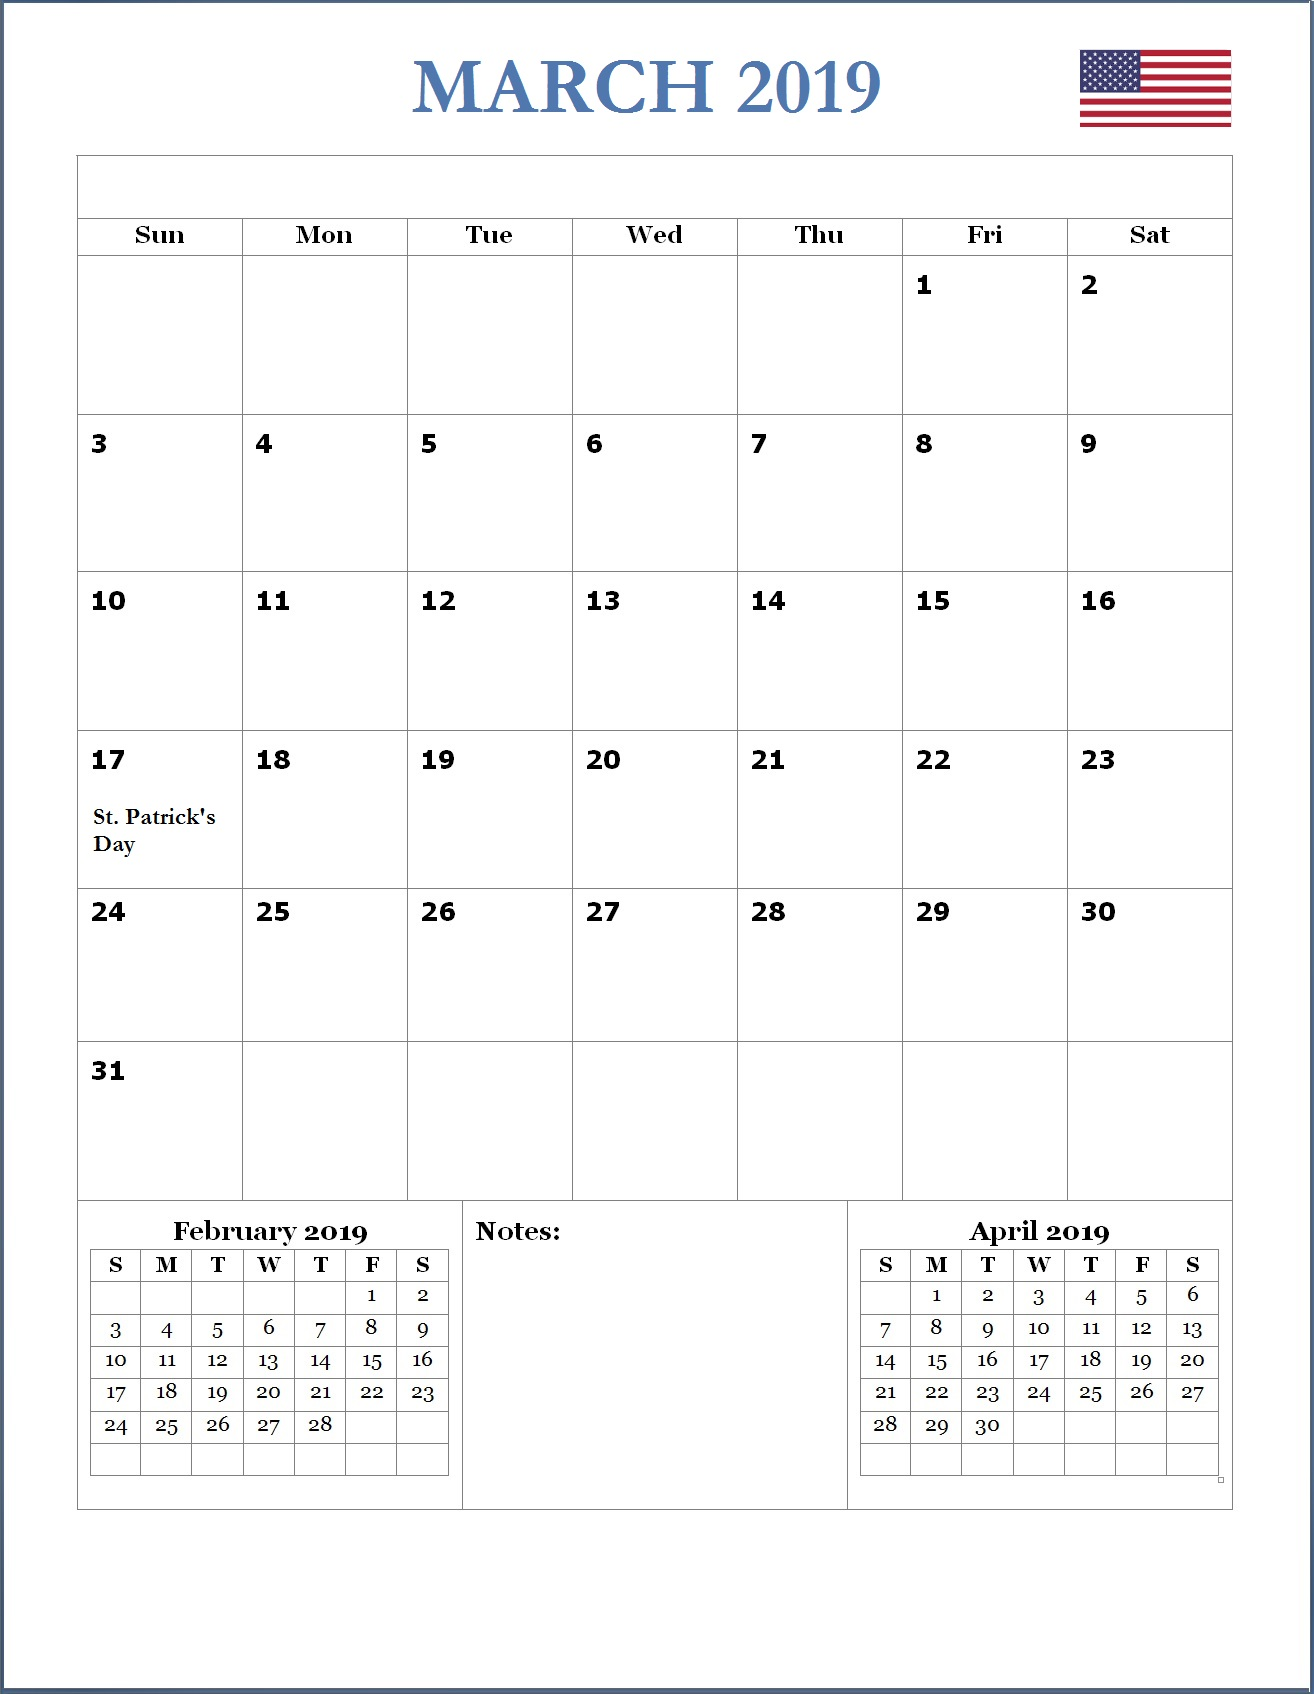 2019 March USA Holidays Calendar